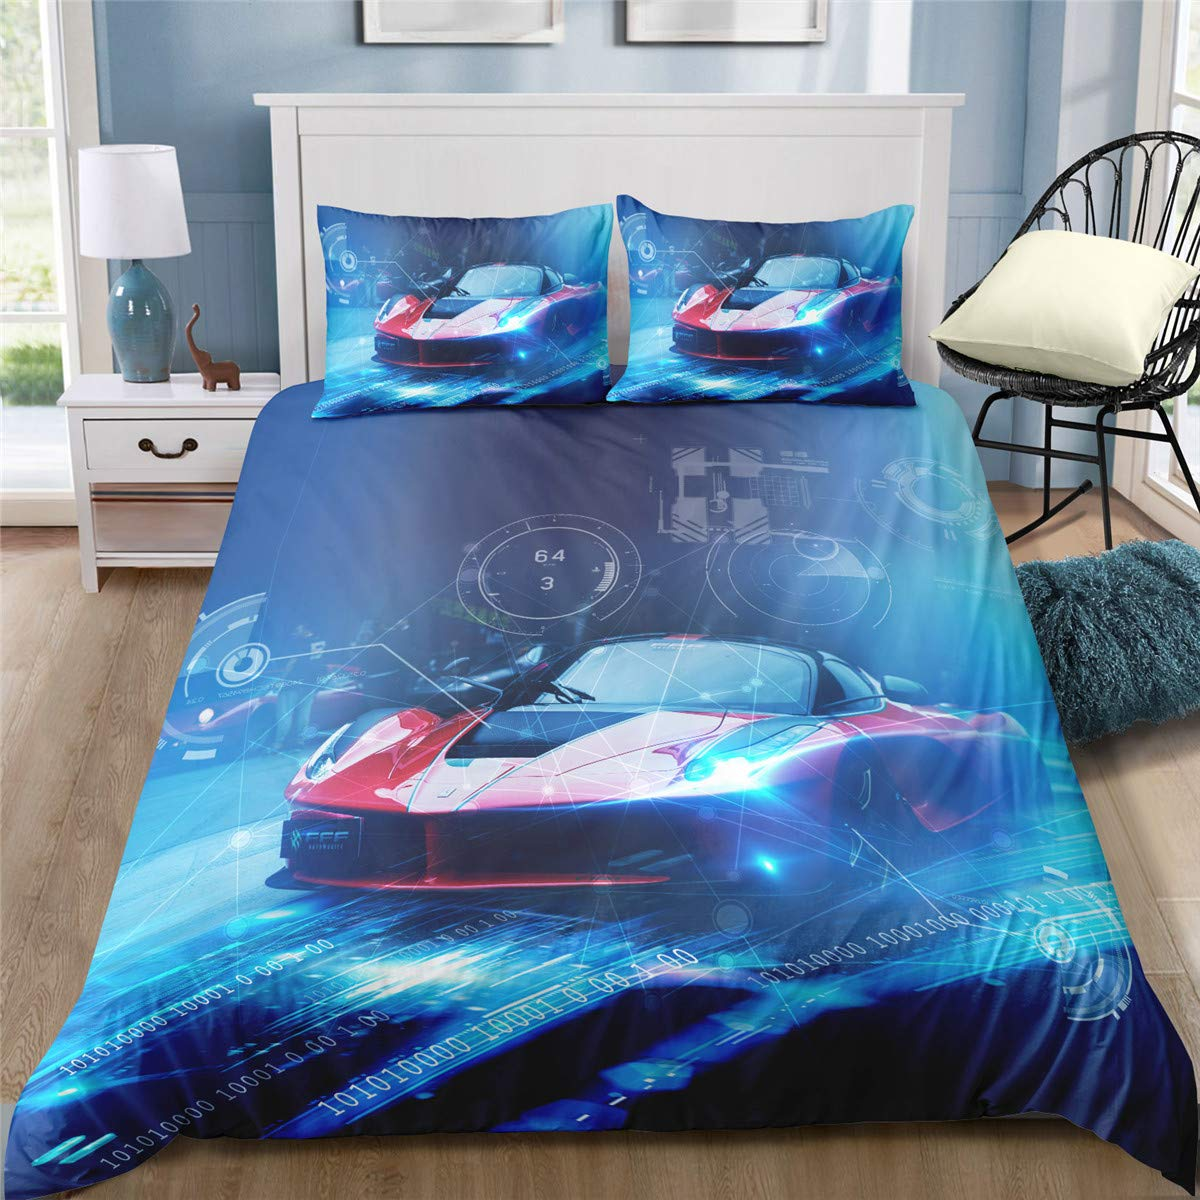 Helehome Race Car Duvet Cover Sets Boy's Sport Bedding Set with Zipper Closure for Kids 2 Piece Brushed Microfiber Fabric Print,Twin Size